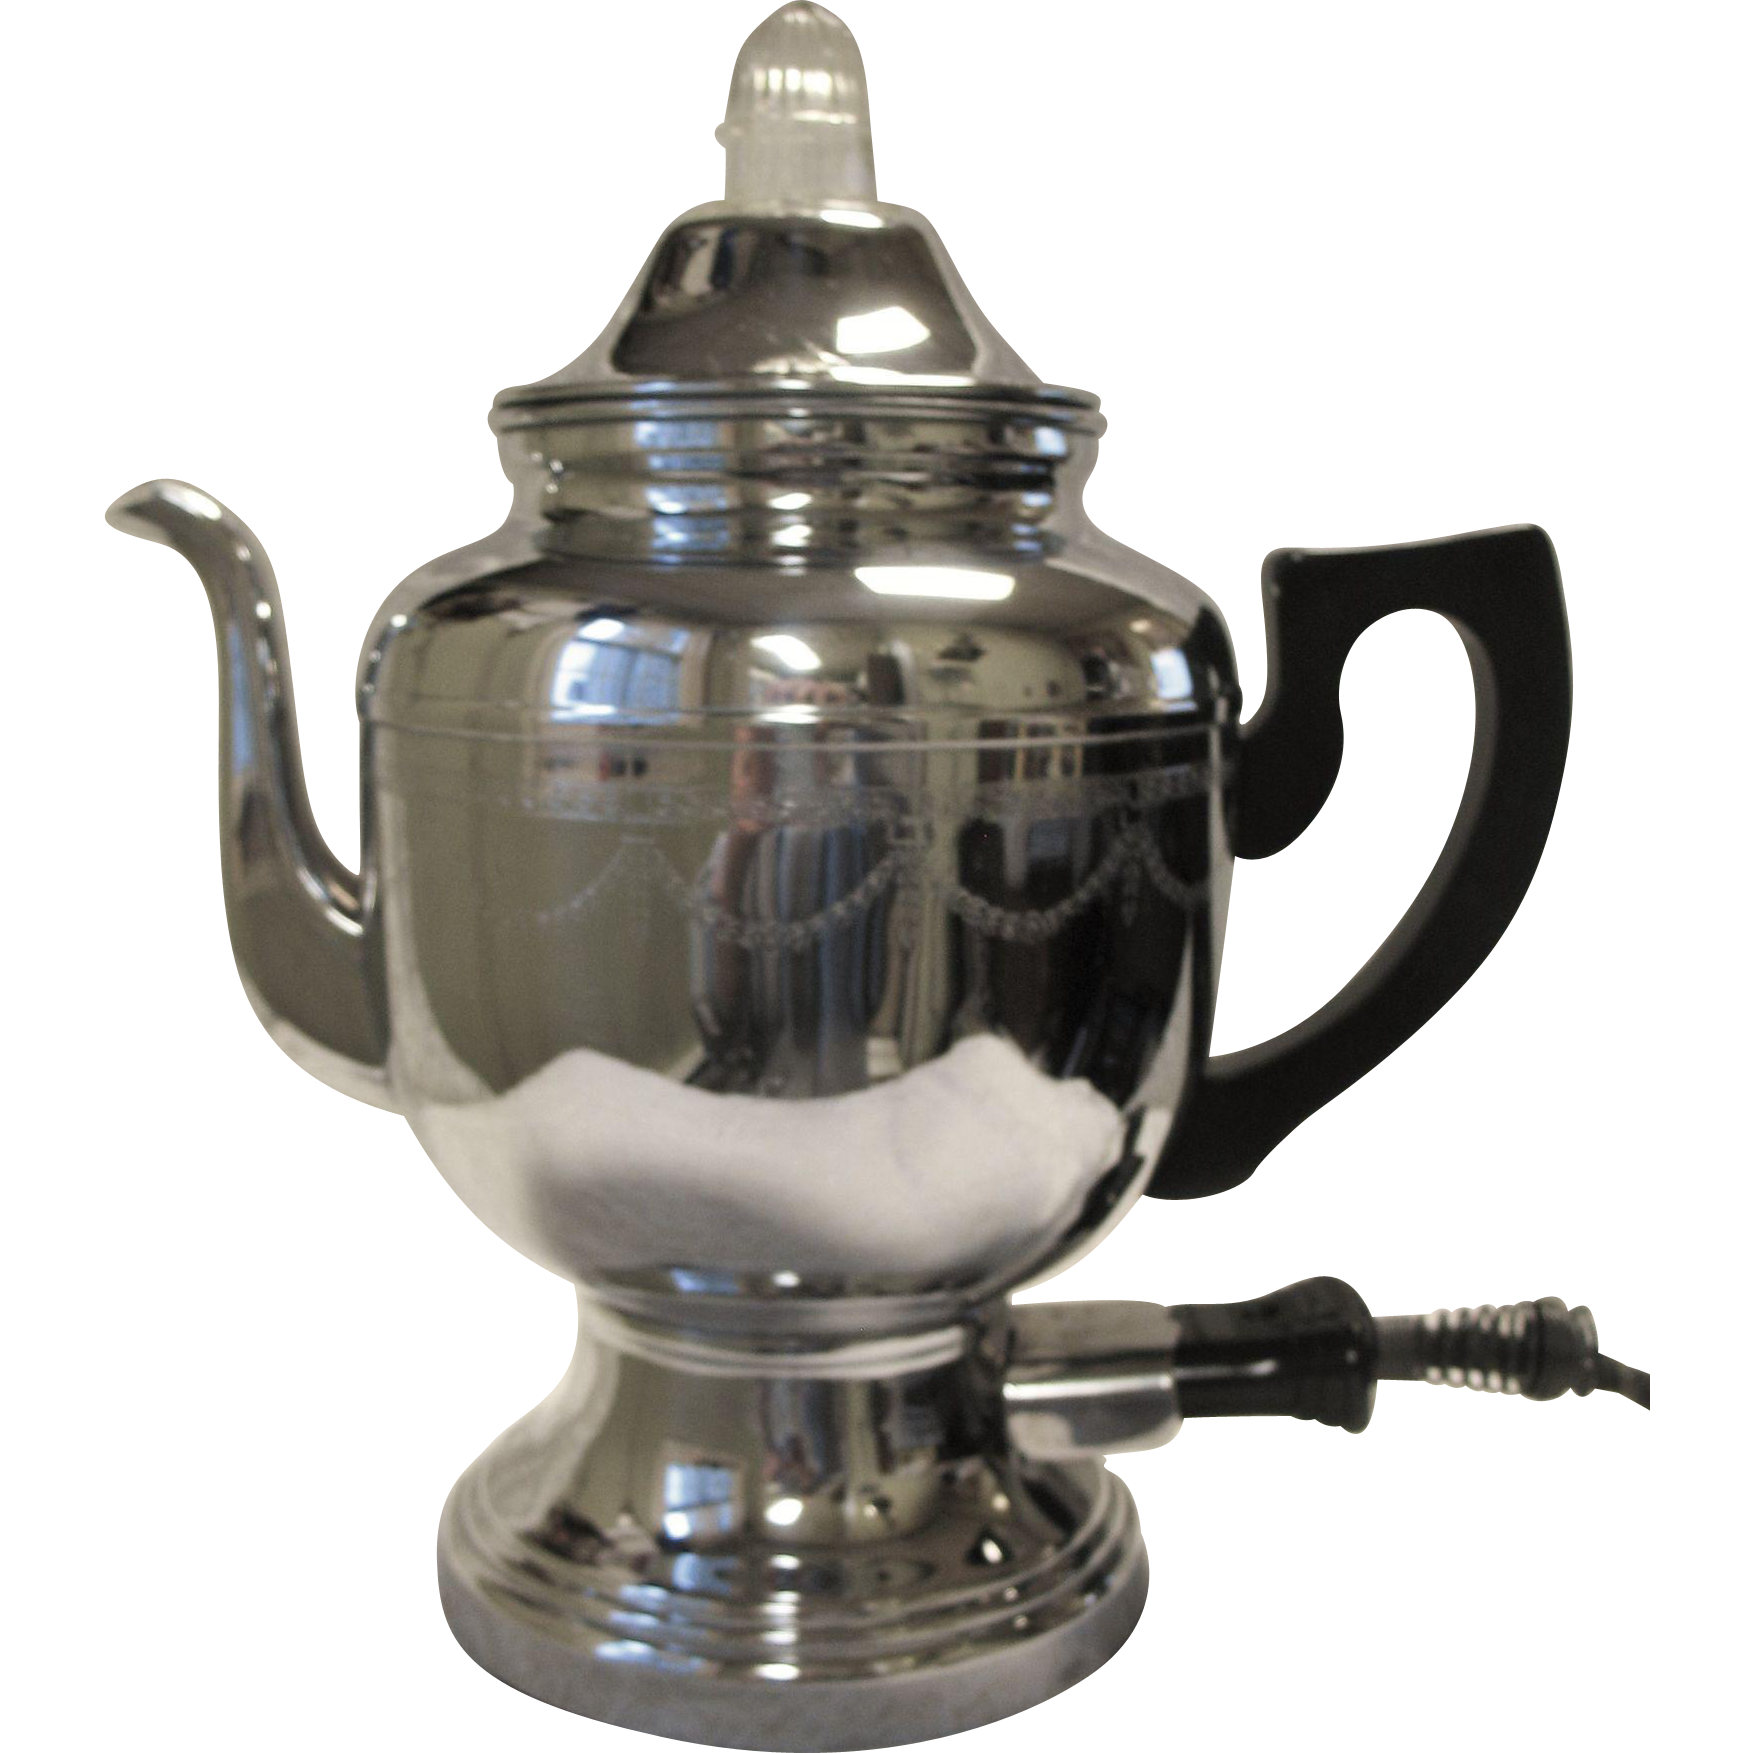 Coffee Maker With Percolator : Vintage Farberware Electric Coffee Percolator Pot Art Deco Chrome from mightyfinefinds on Ruby Lane